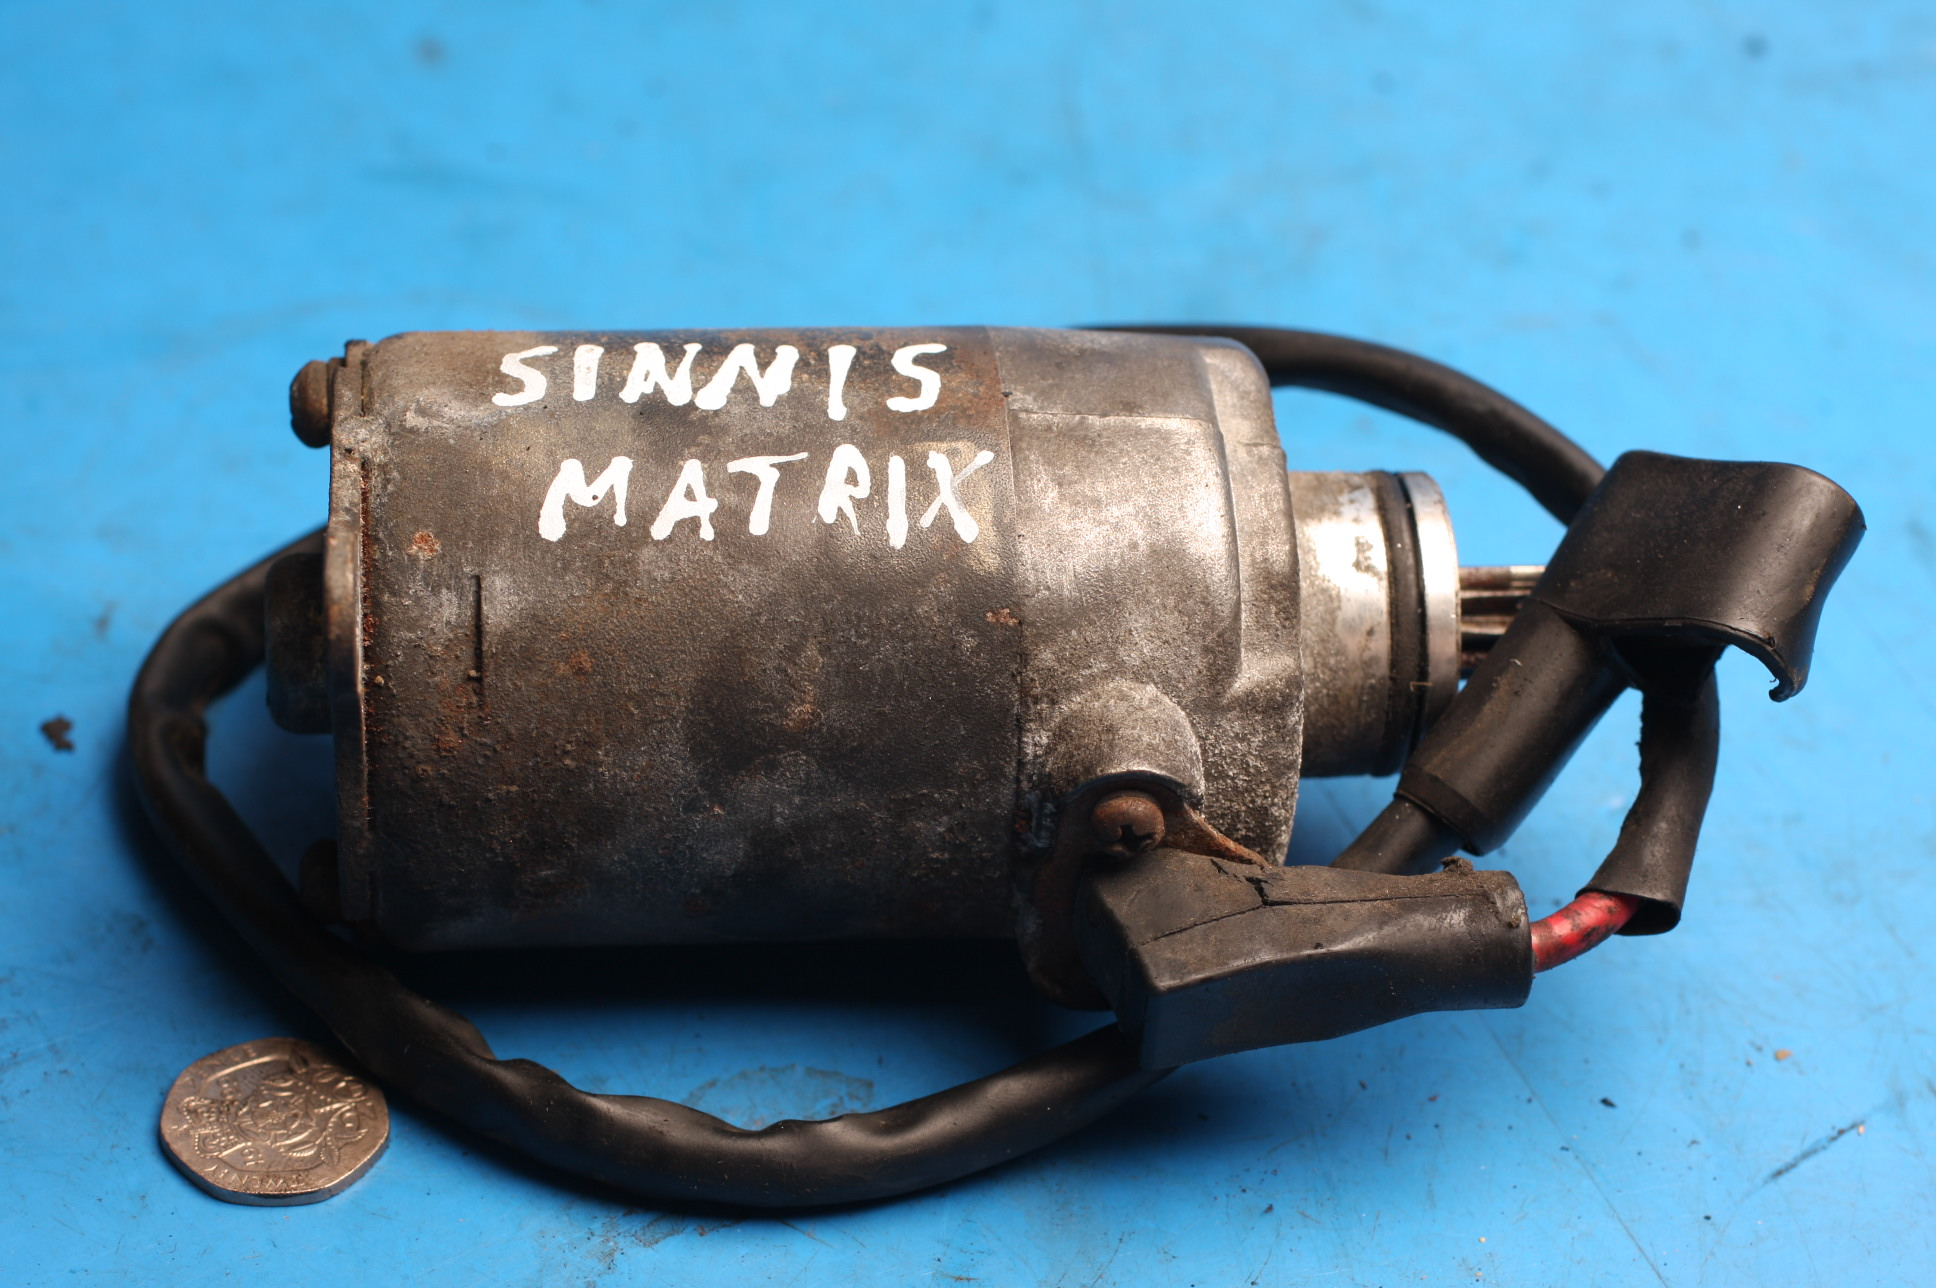 starter motor used Sinnis Matrix2